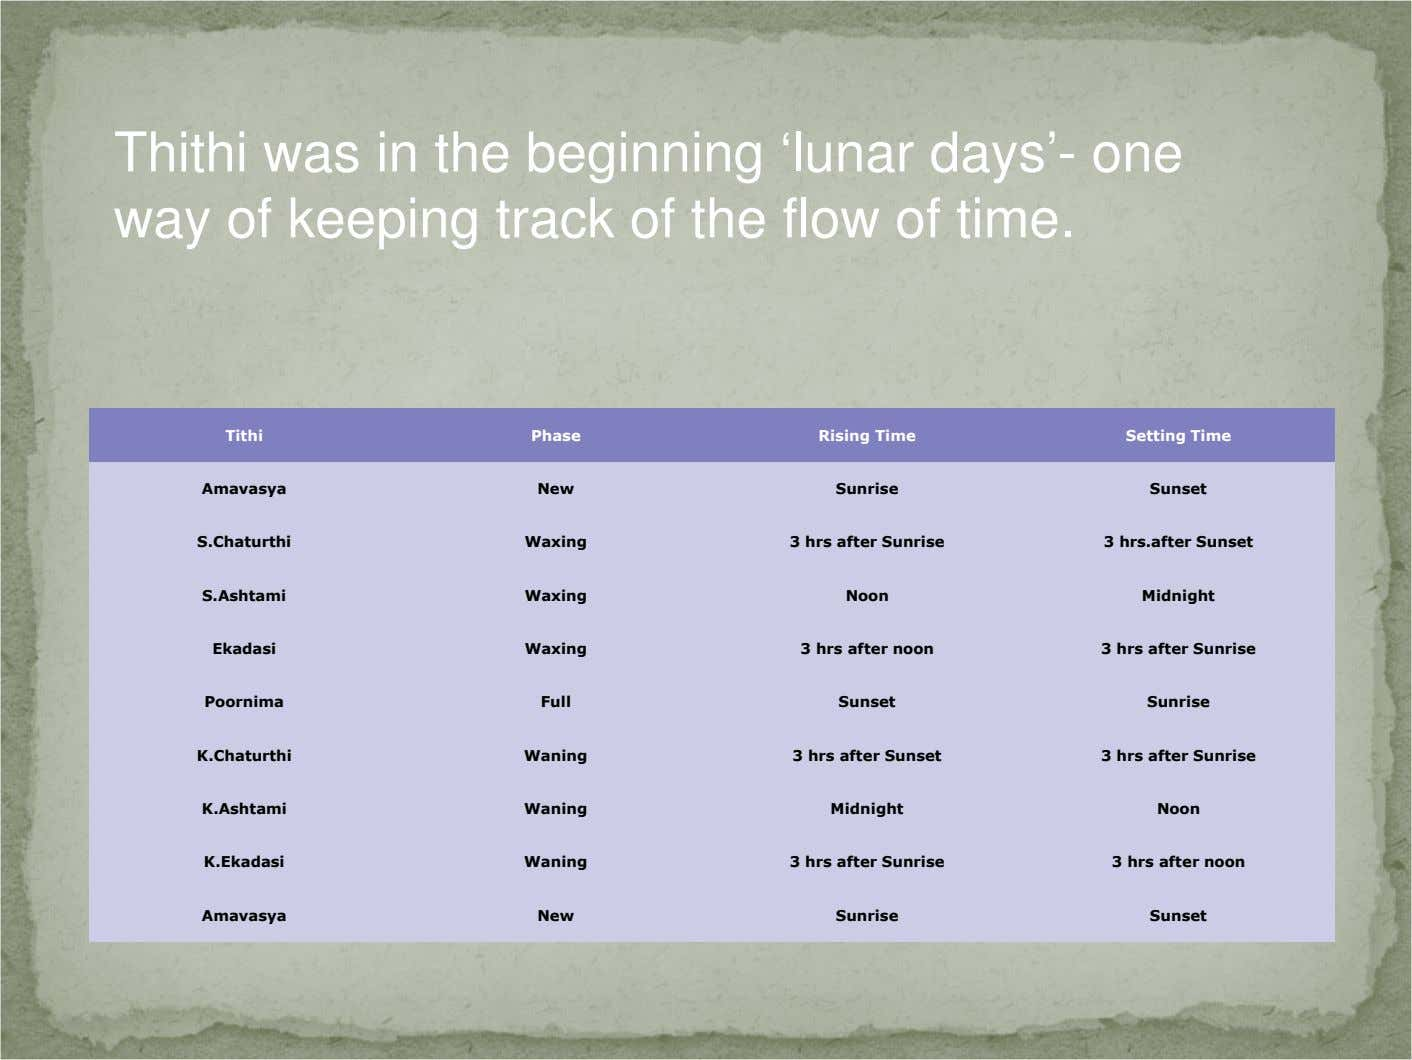 Thithi was in the beginning 'lunar days'- one way of keeping track of the flow